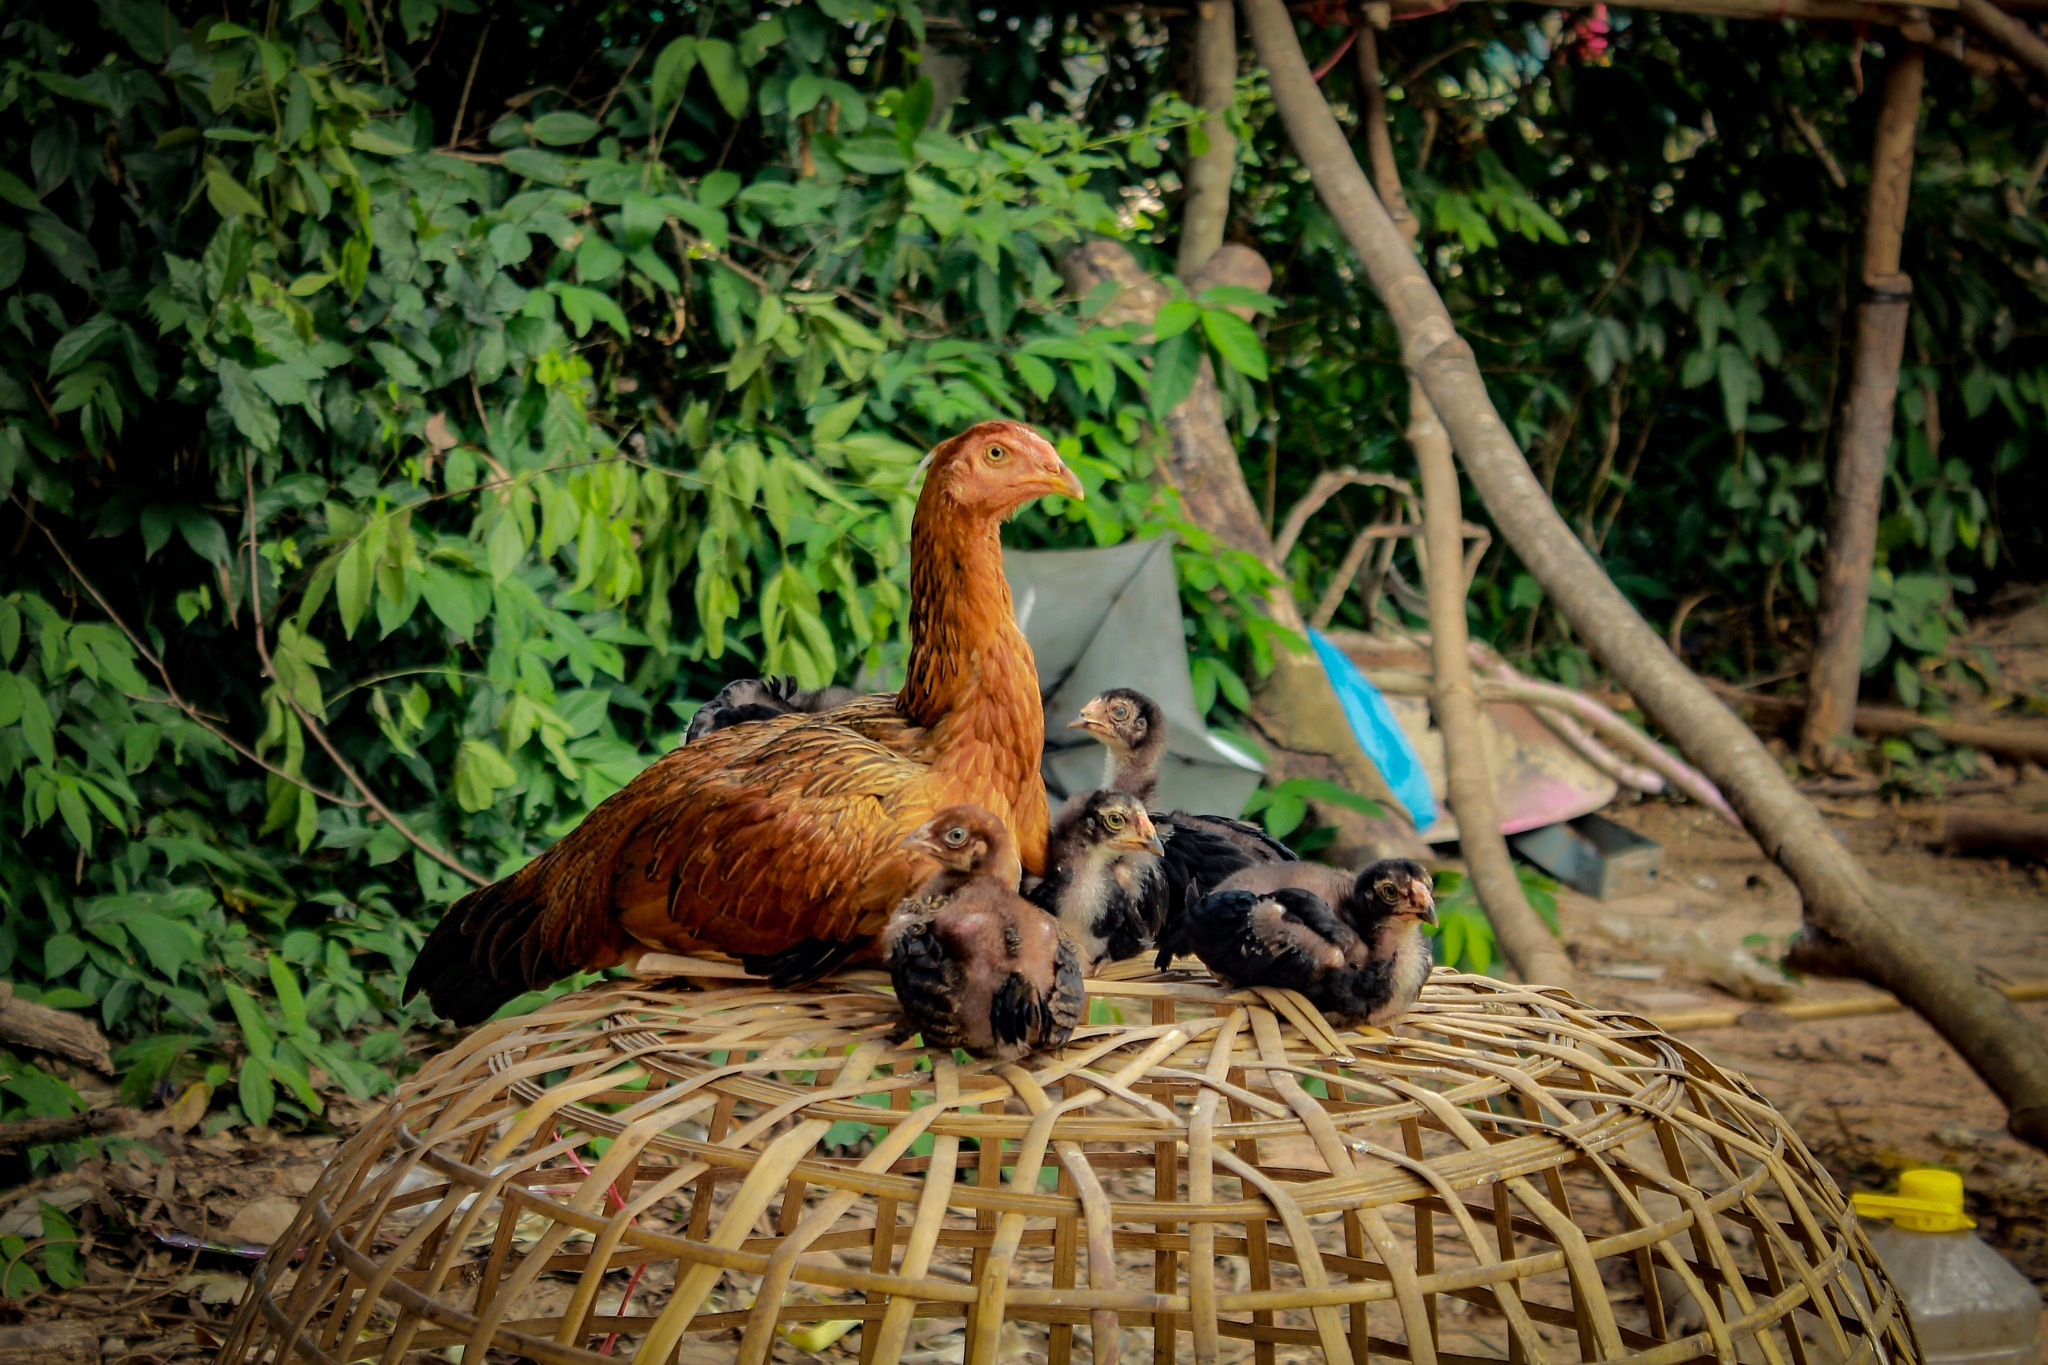 Hen and Chicks by Thinesh Rao